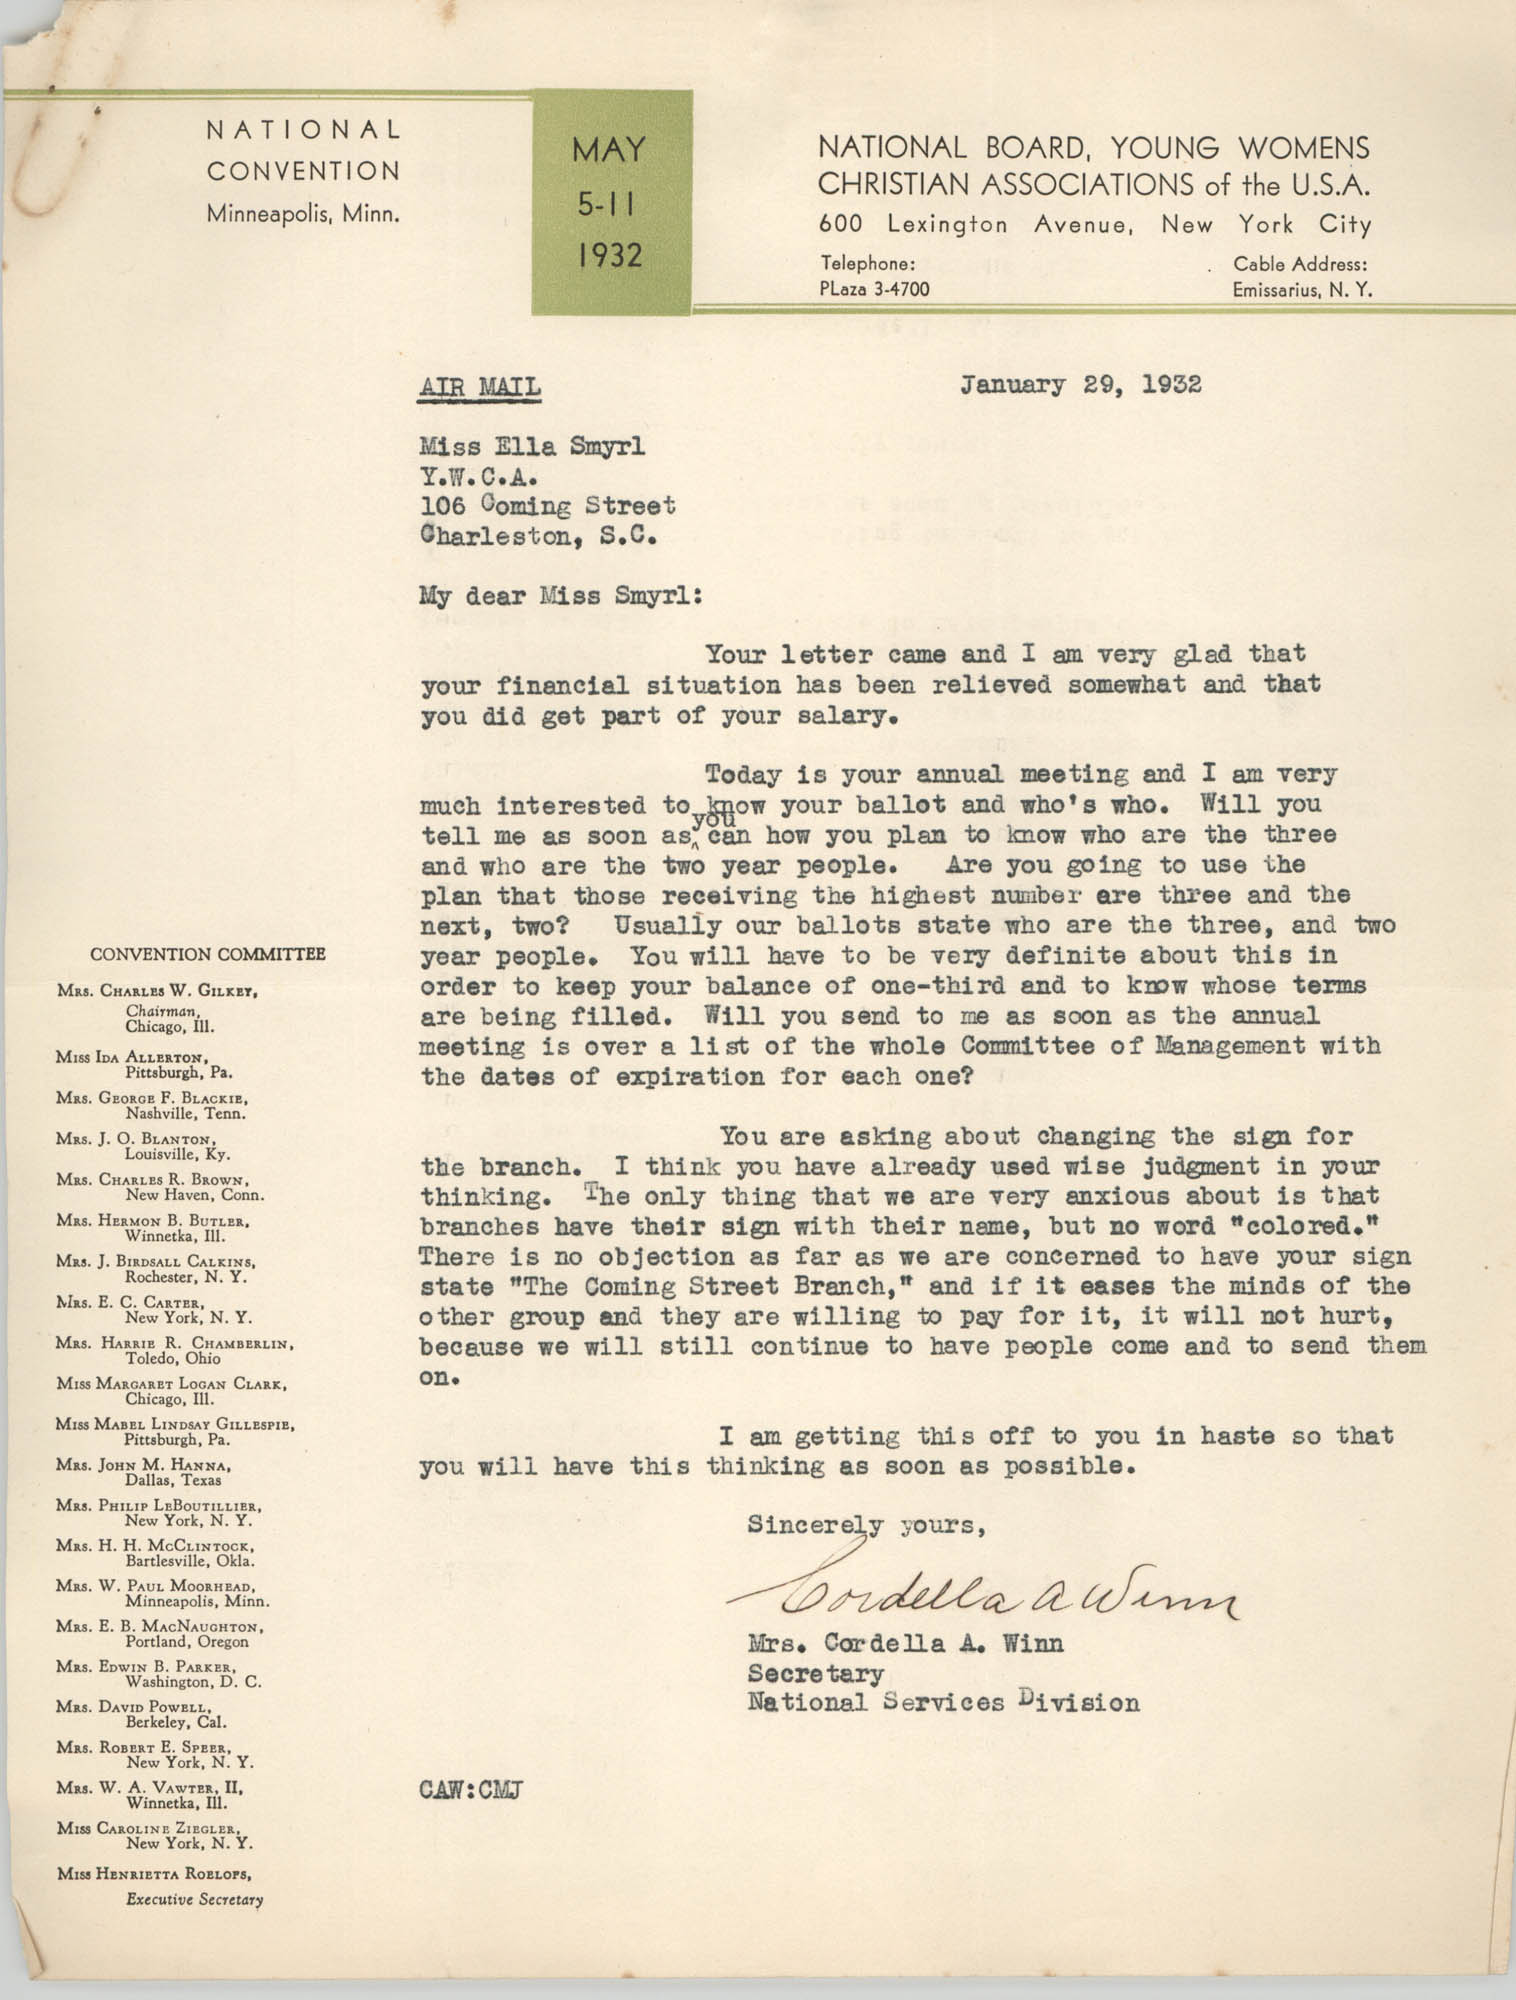 Letter from Cordella A. Winn to Ella L. Smyrl, January 29, 1932